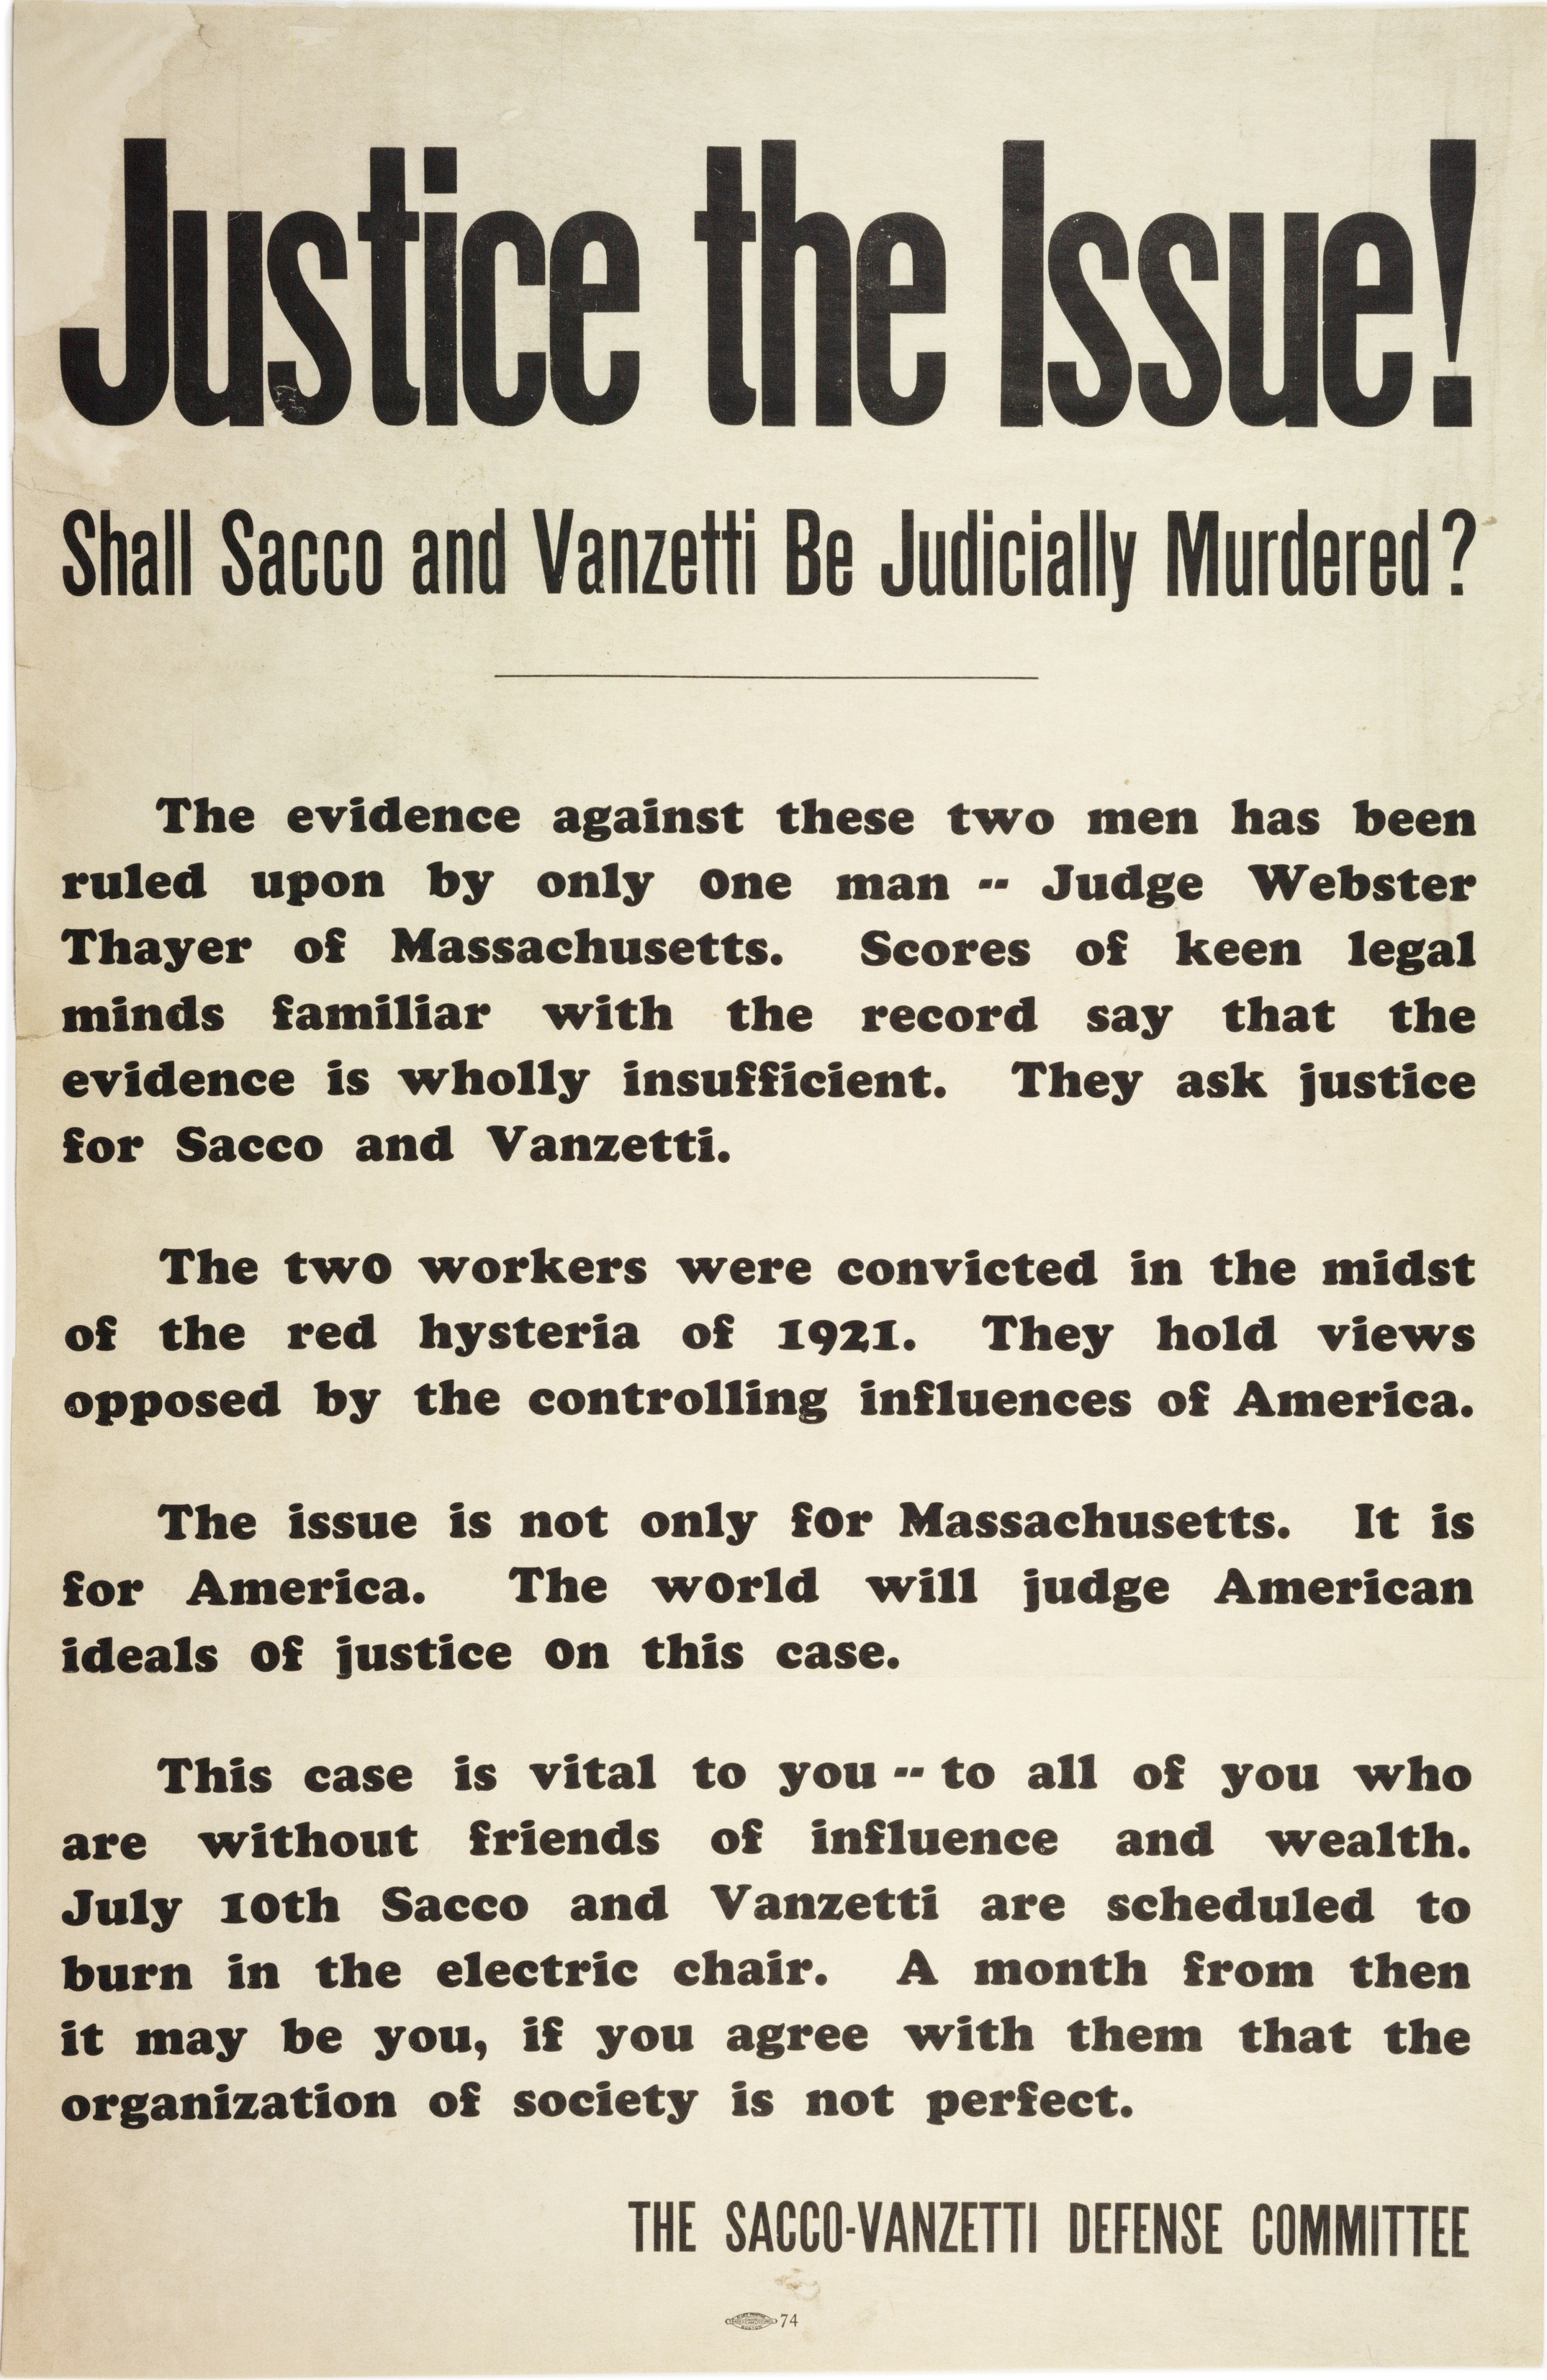 """Sacco-Vanzetti Defense Committee, """"Justice the Issue! Shall Sacco and Vanzetti"""